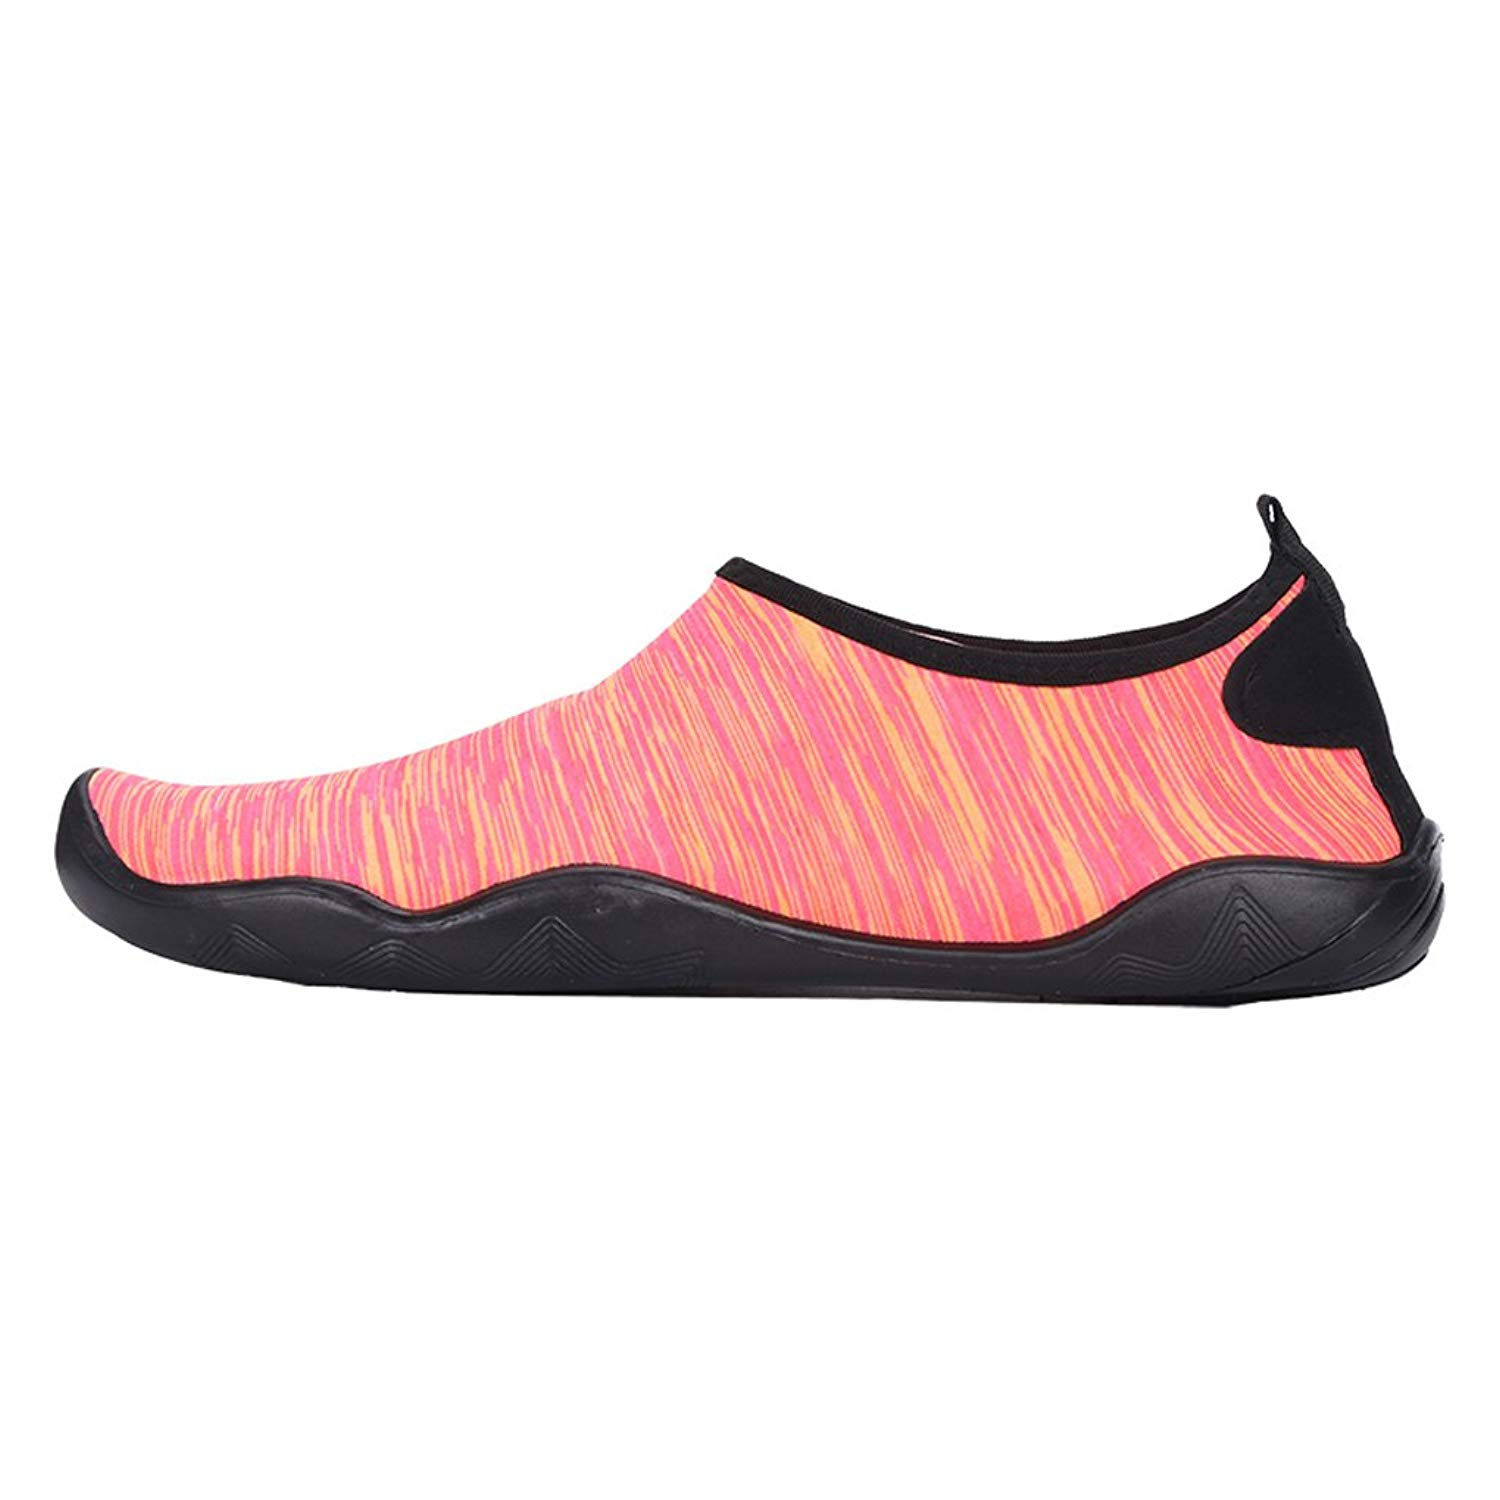 Dovaly Mens Quick-Drying Water Shoes Beach Yoga Sport Sneaker Seaside Aqua Shoes